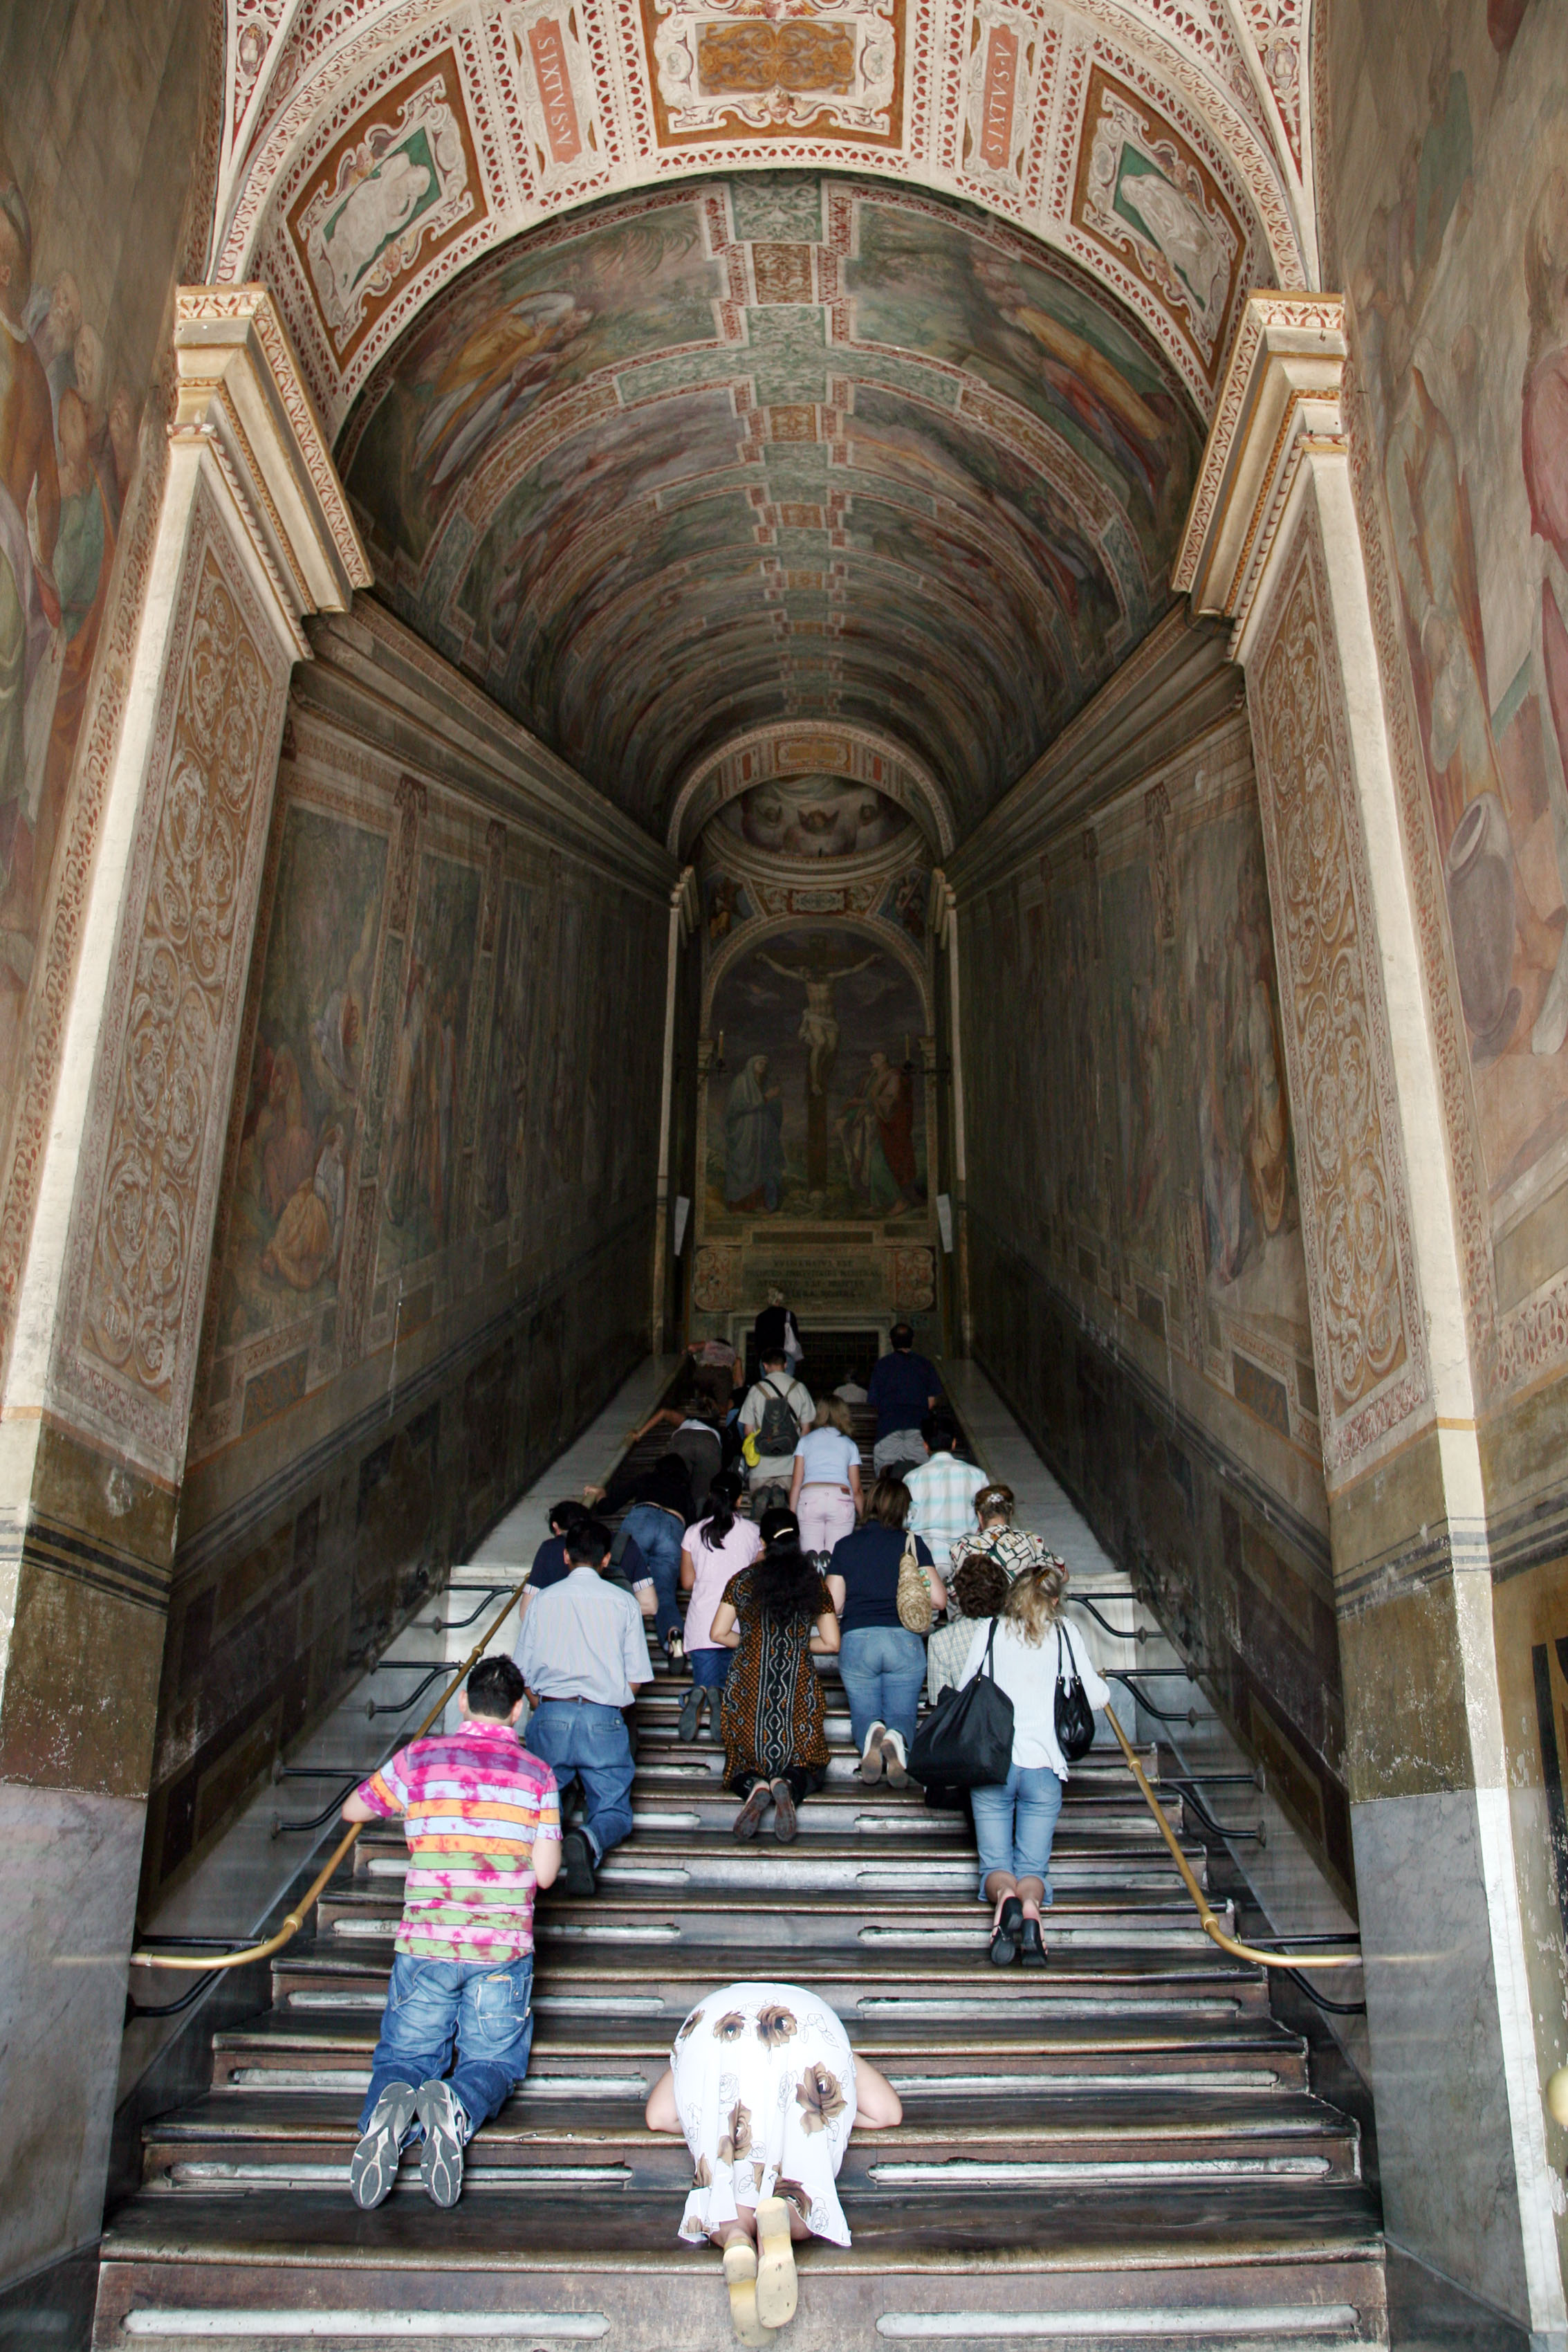 ROME, ITALY - JUNE 13: Pilgrims pray and visit restored frescos of the Scala Sancta (Holy Stairs) on June 13, 2007 in Rome, Italy. (Photo by Franco Origlia/Getty Images)